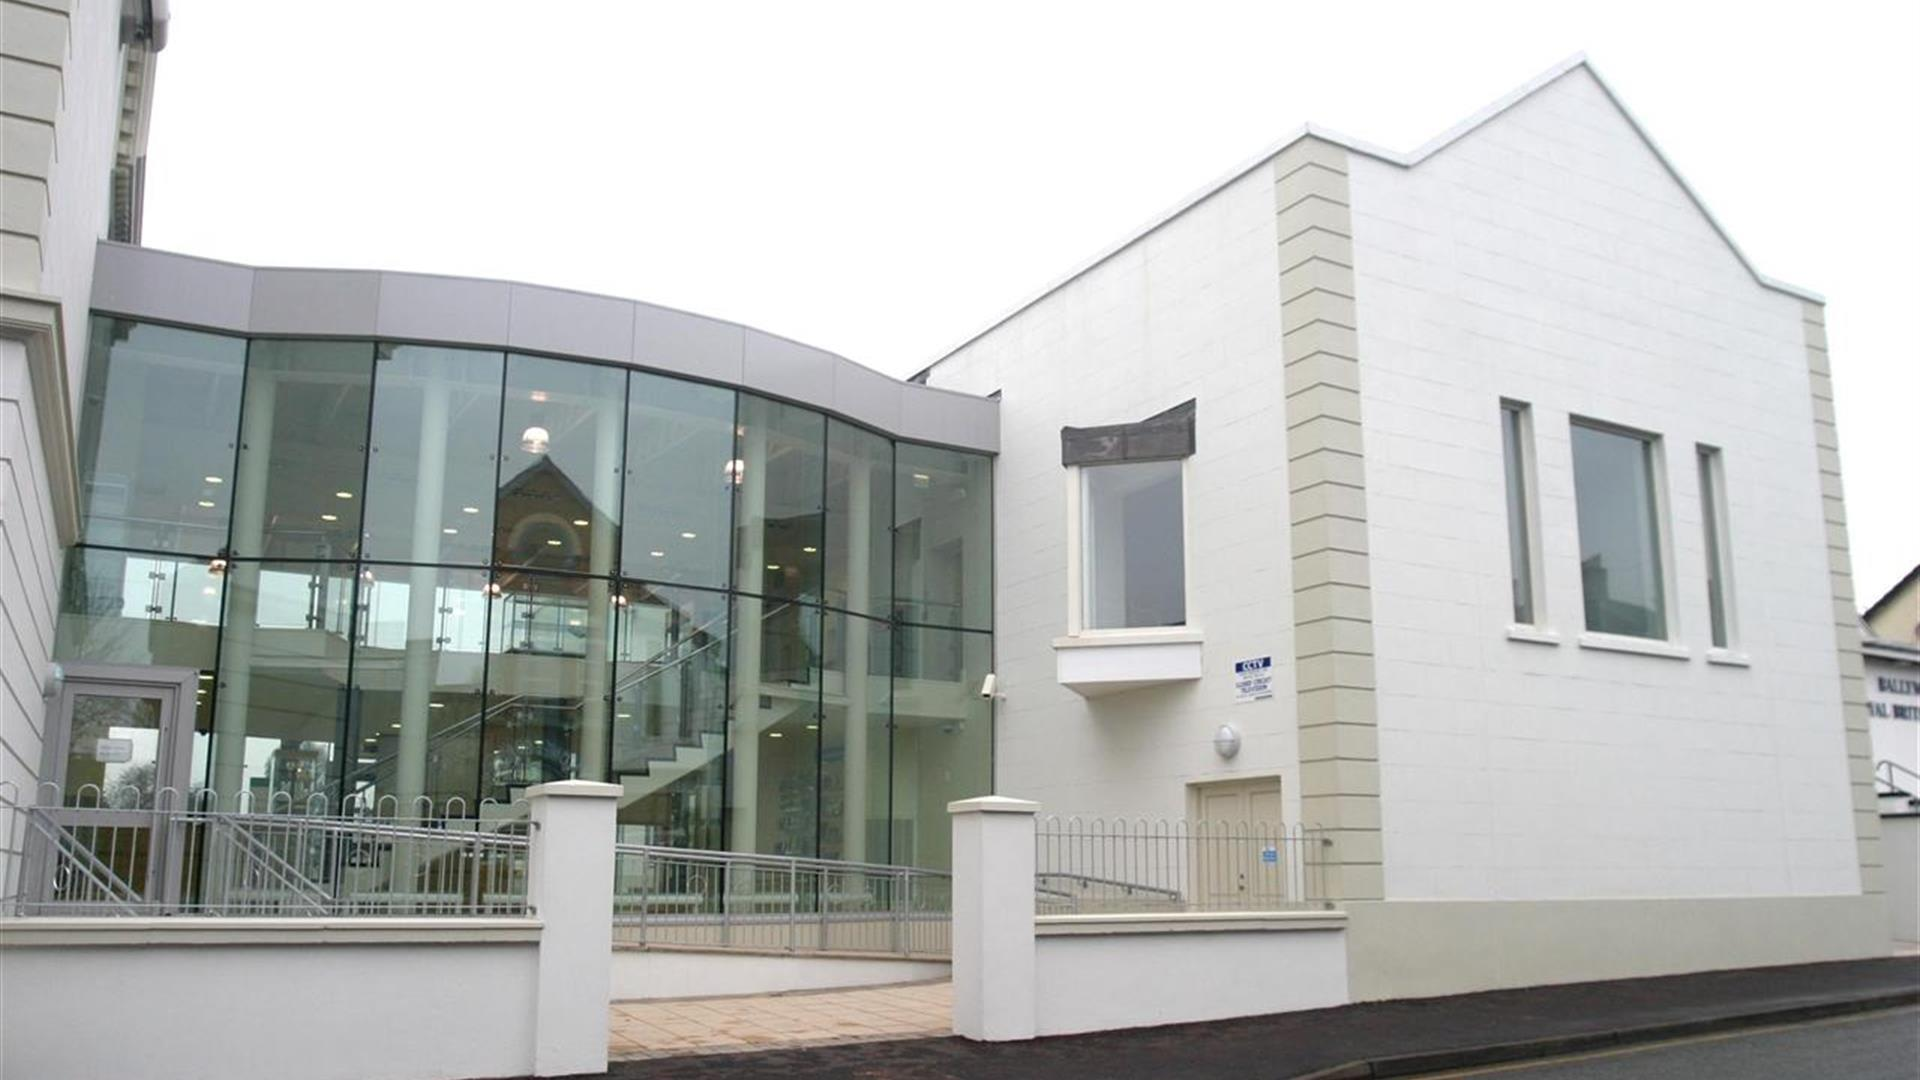 Ballymoney Town Hall Arts, Museum and Visitor Information